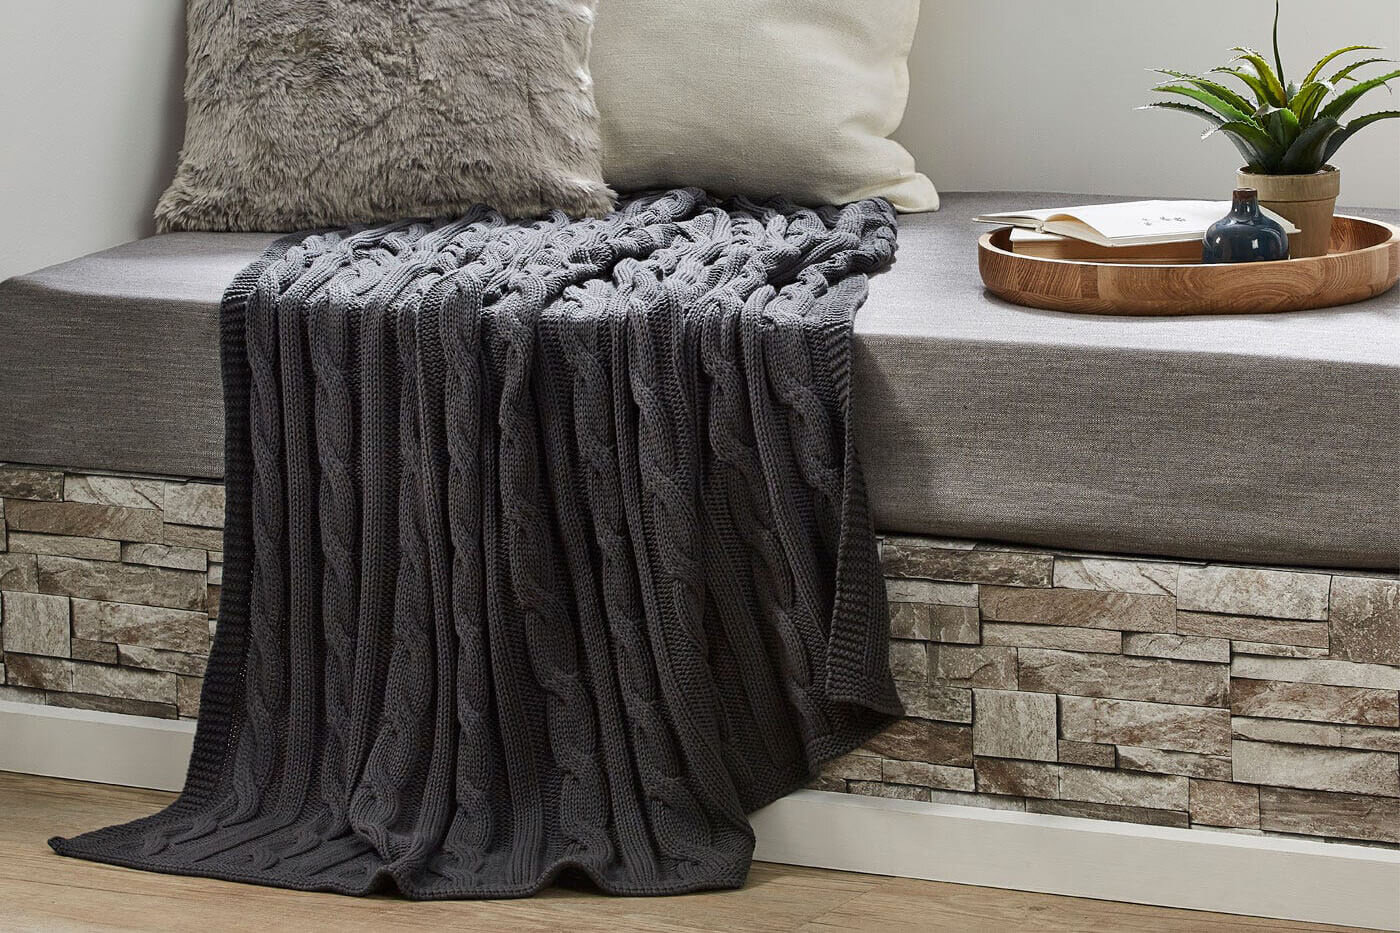 Morgan & Finch Cable Knit Throw Bed Bath N Table.jpg